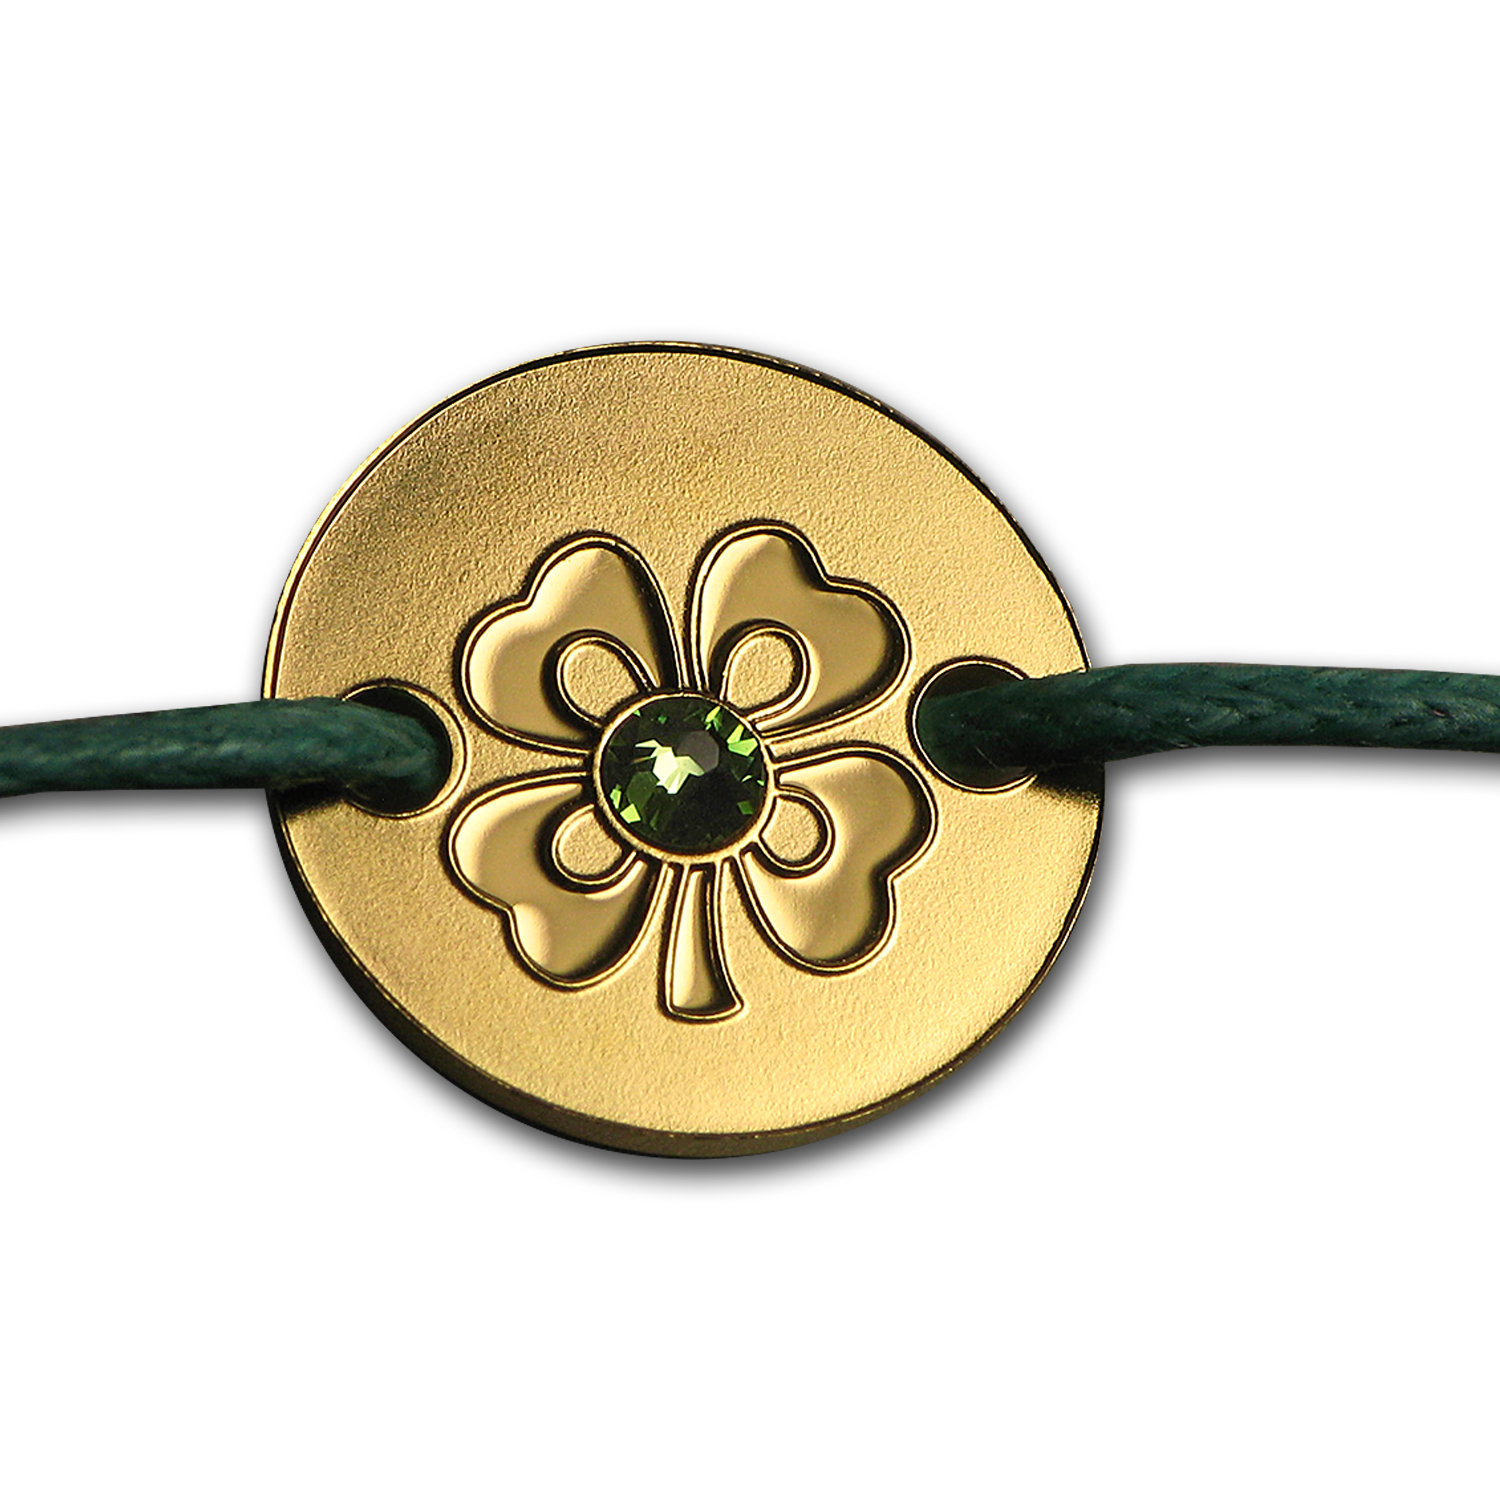 2015 Niue Gold Coin Bracelet Small Treasures (Four Leaf Clover)